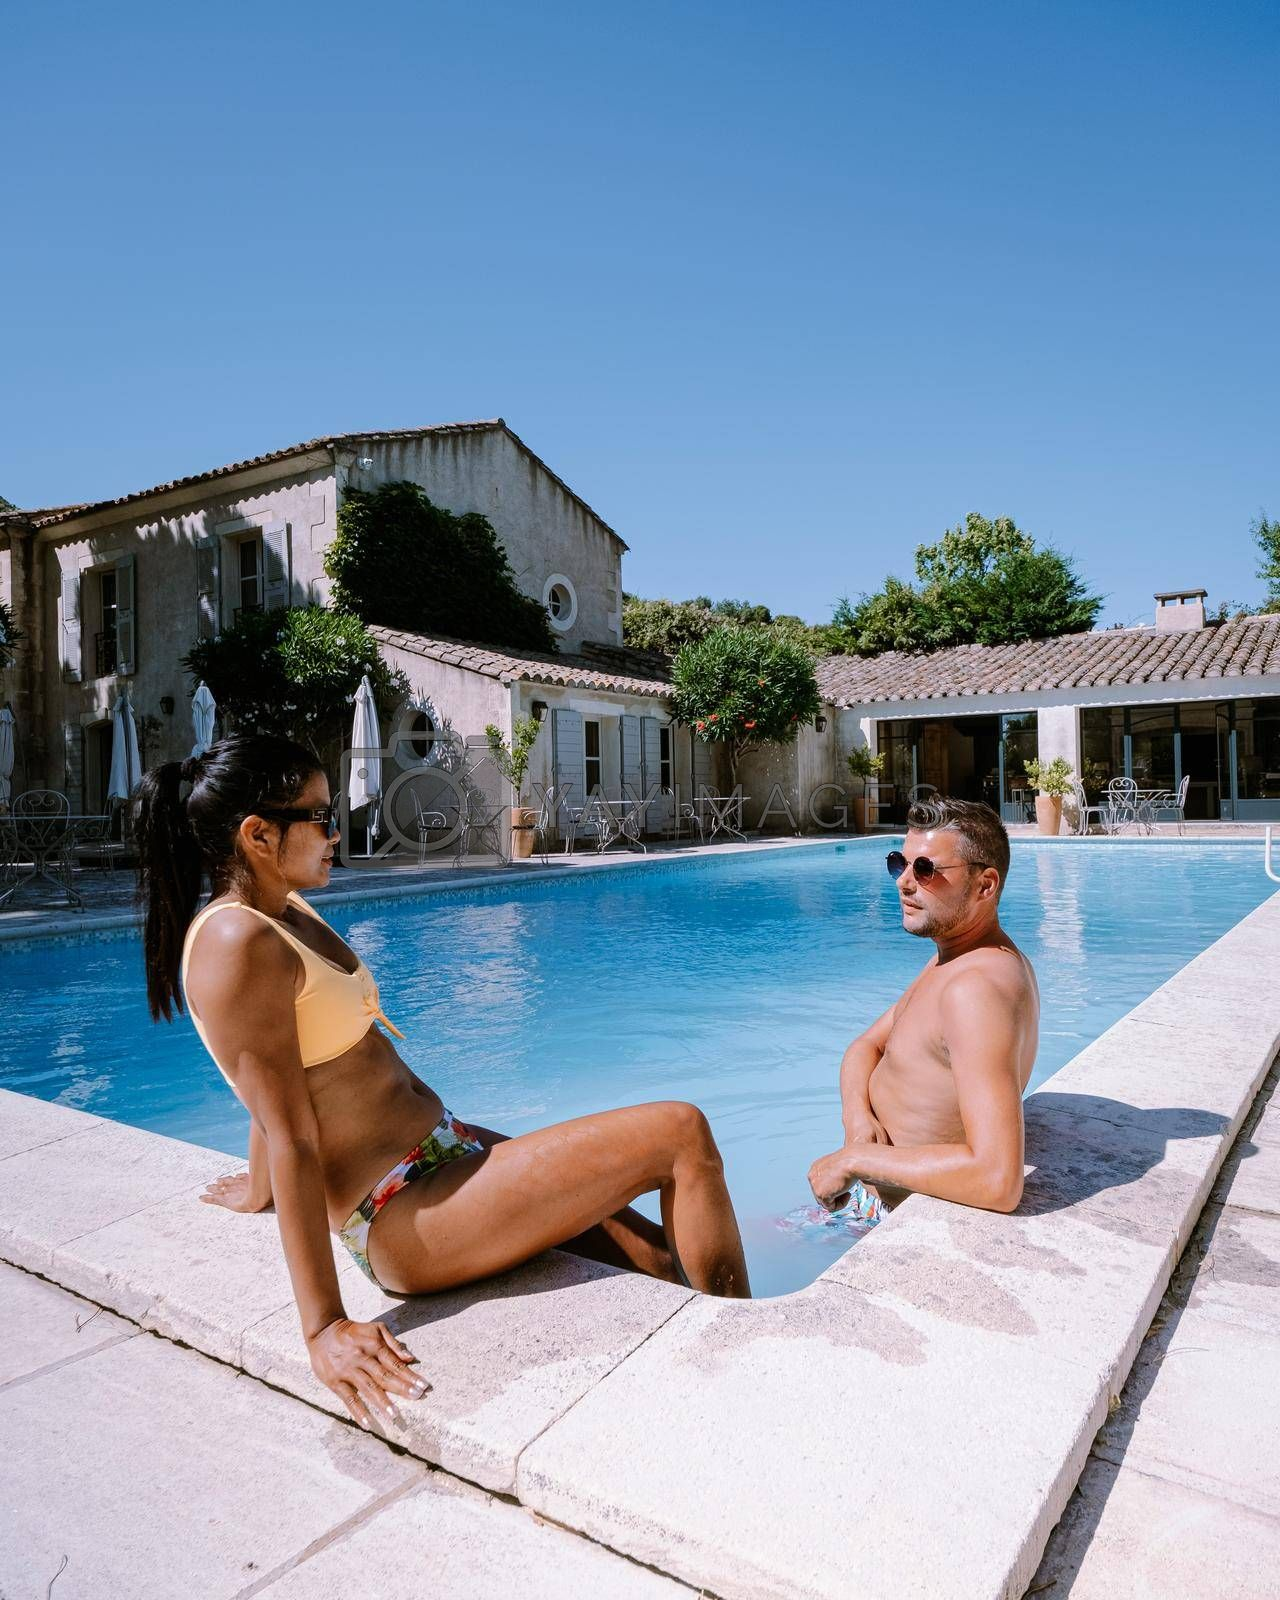 Royalty free image of couple relaxing by the pool in the Provence France, men and woman relaxing by pool at luxury resort by fokkebok